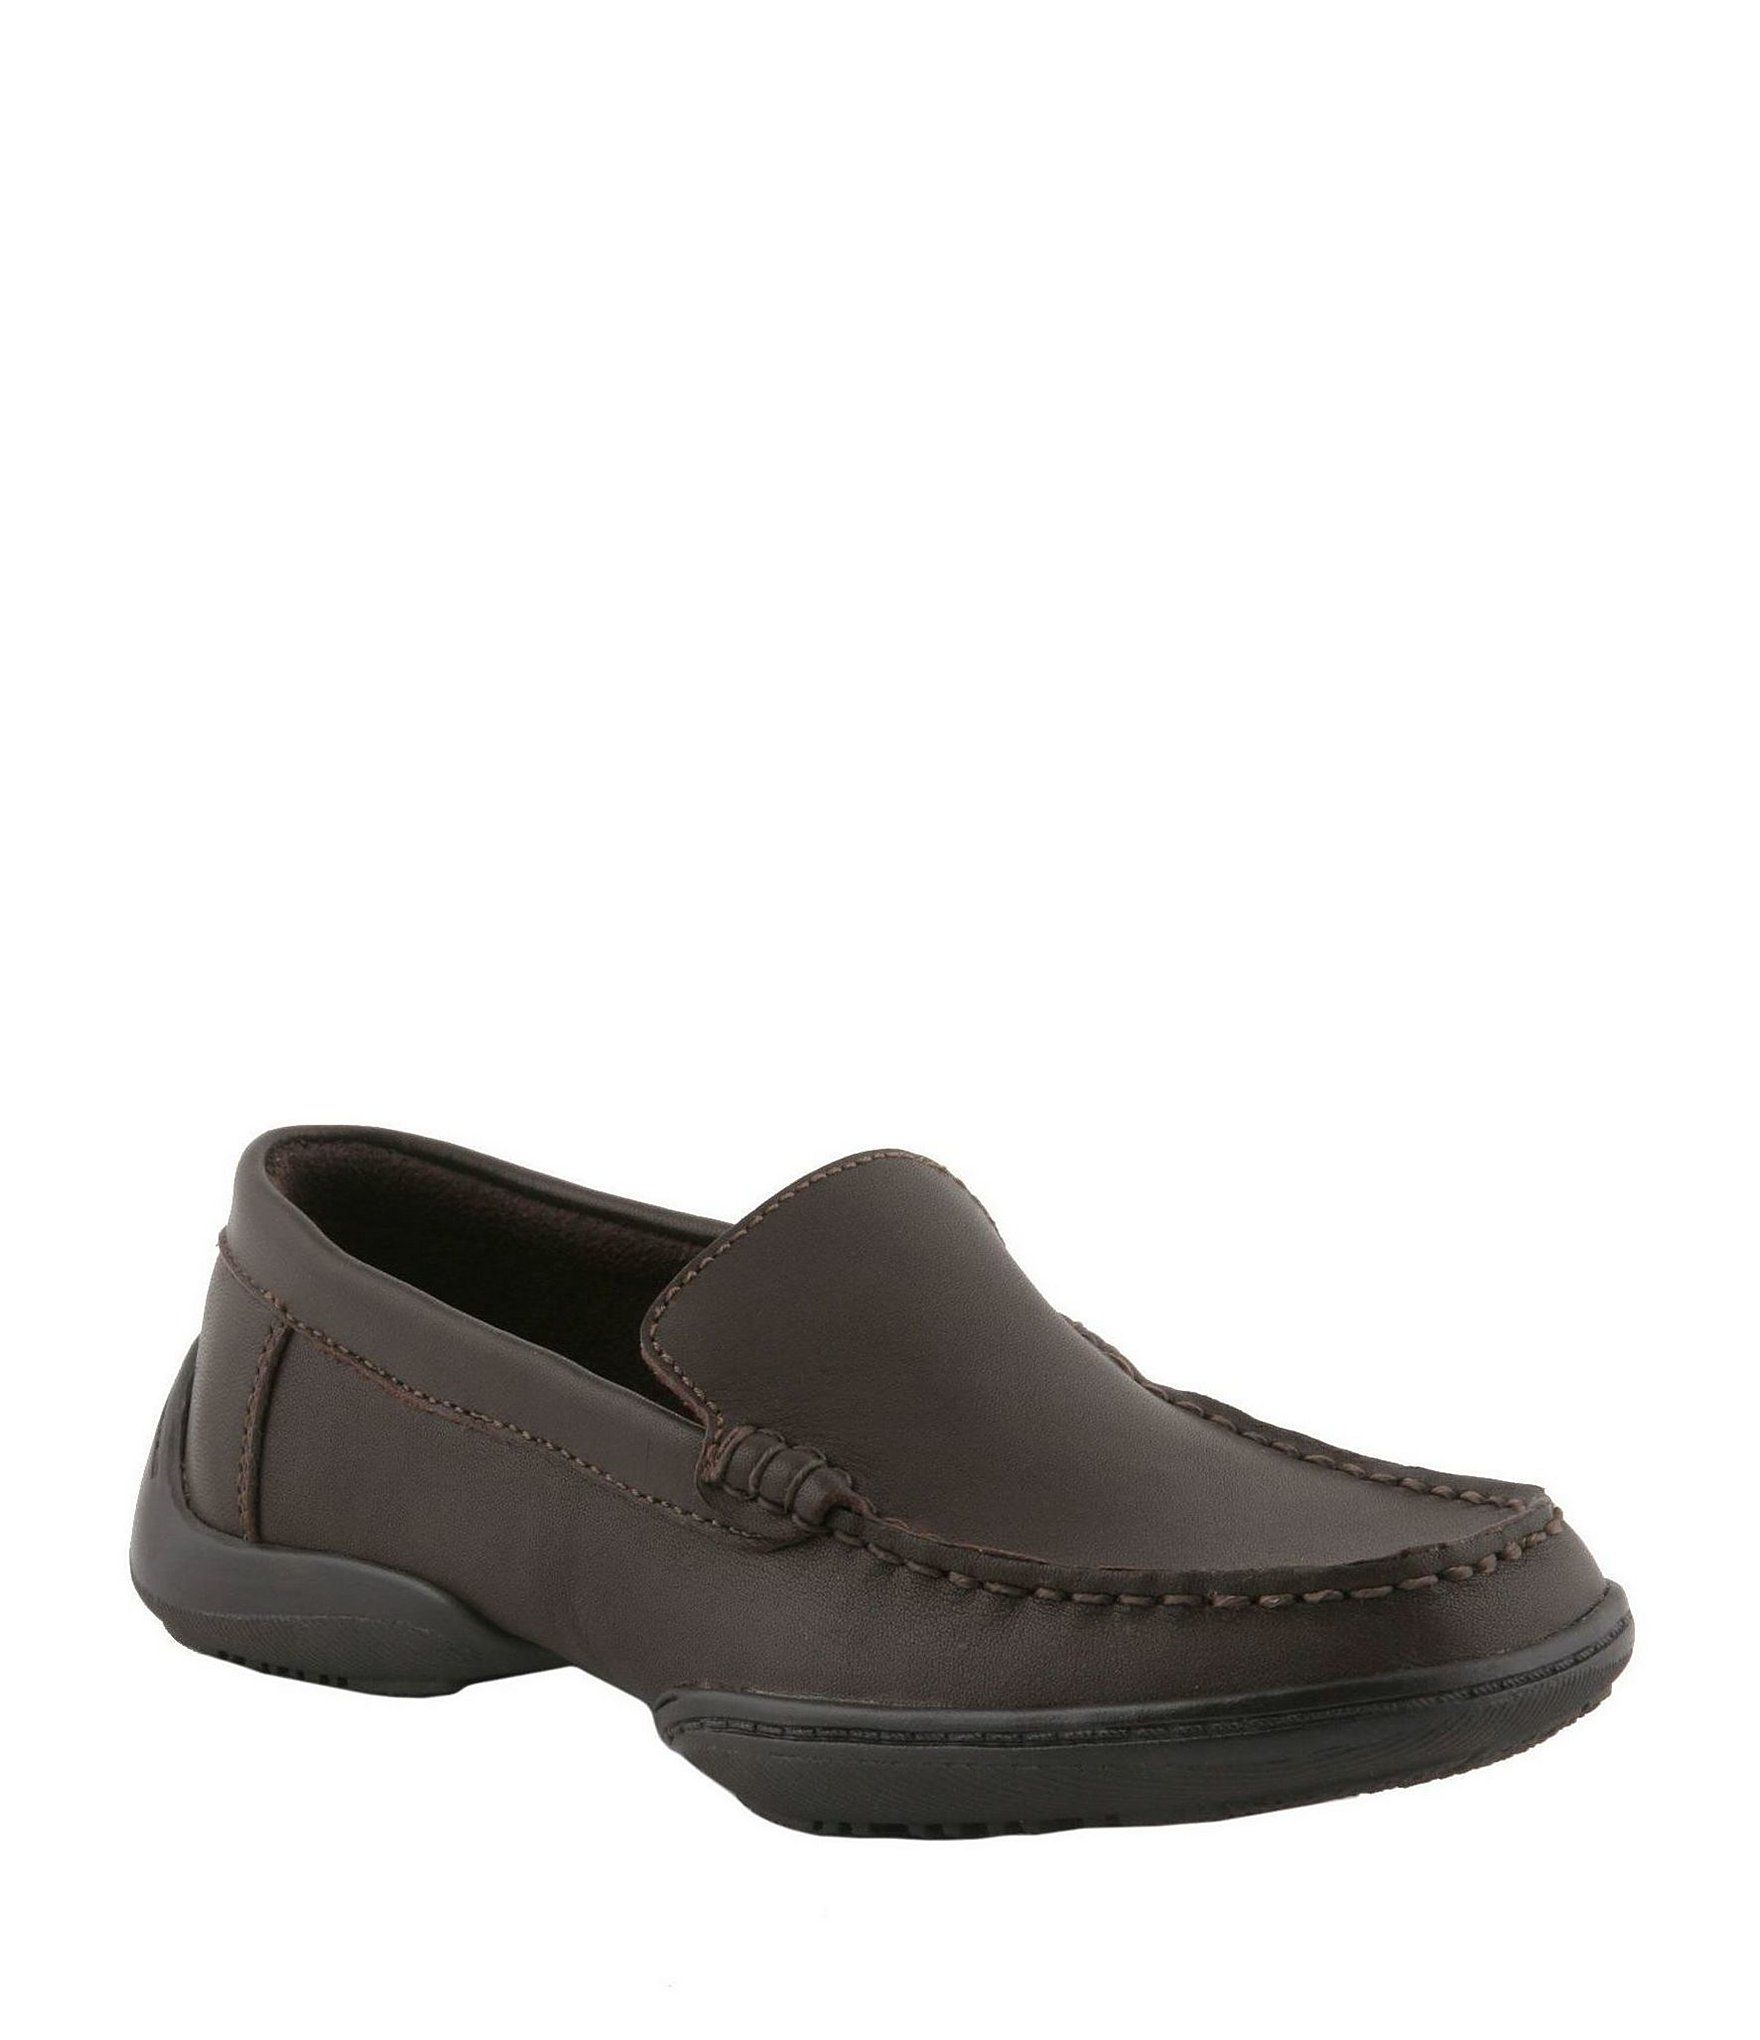 Kenneth Cole Reaction Boys' Driving Dime Dress Shoes – Dark Brown 11M Toddler